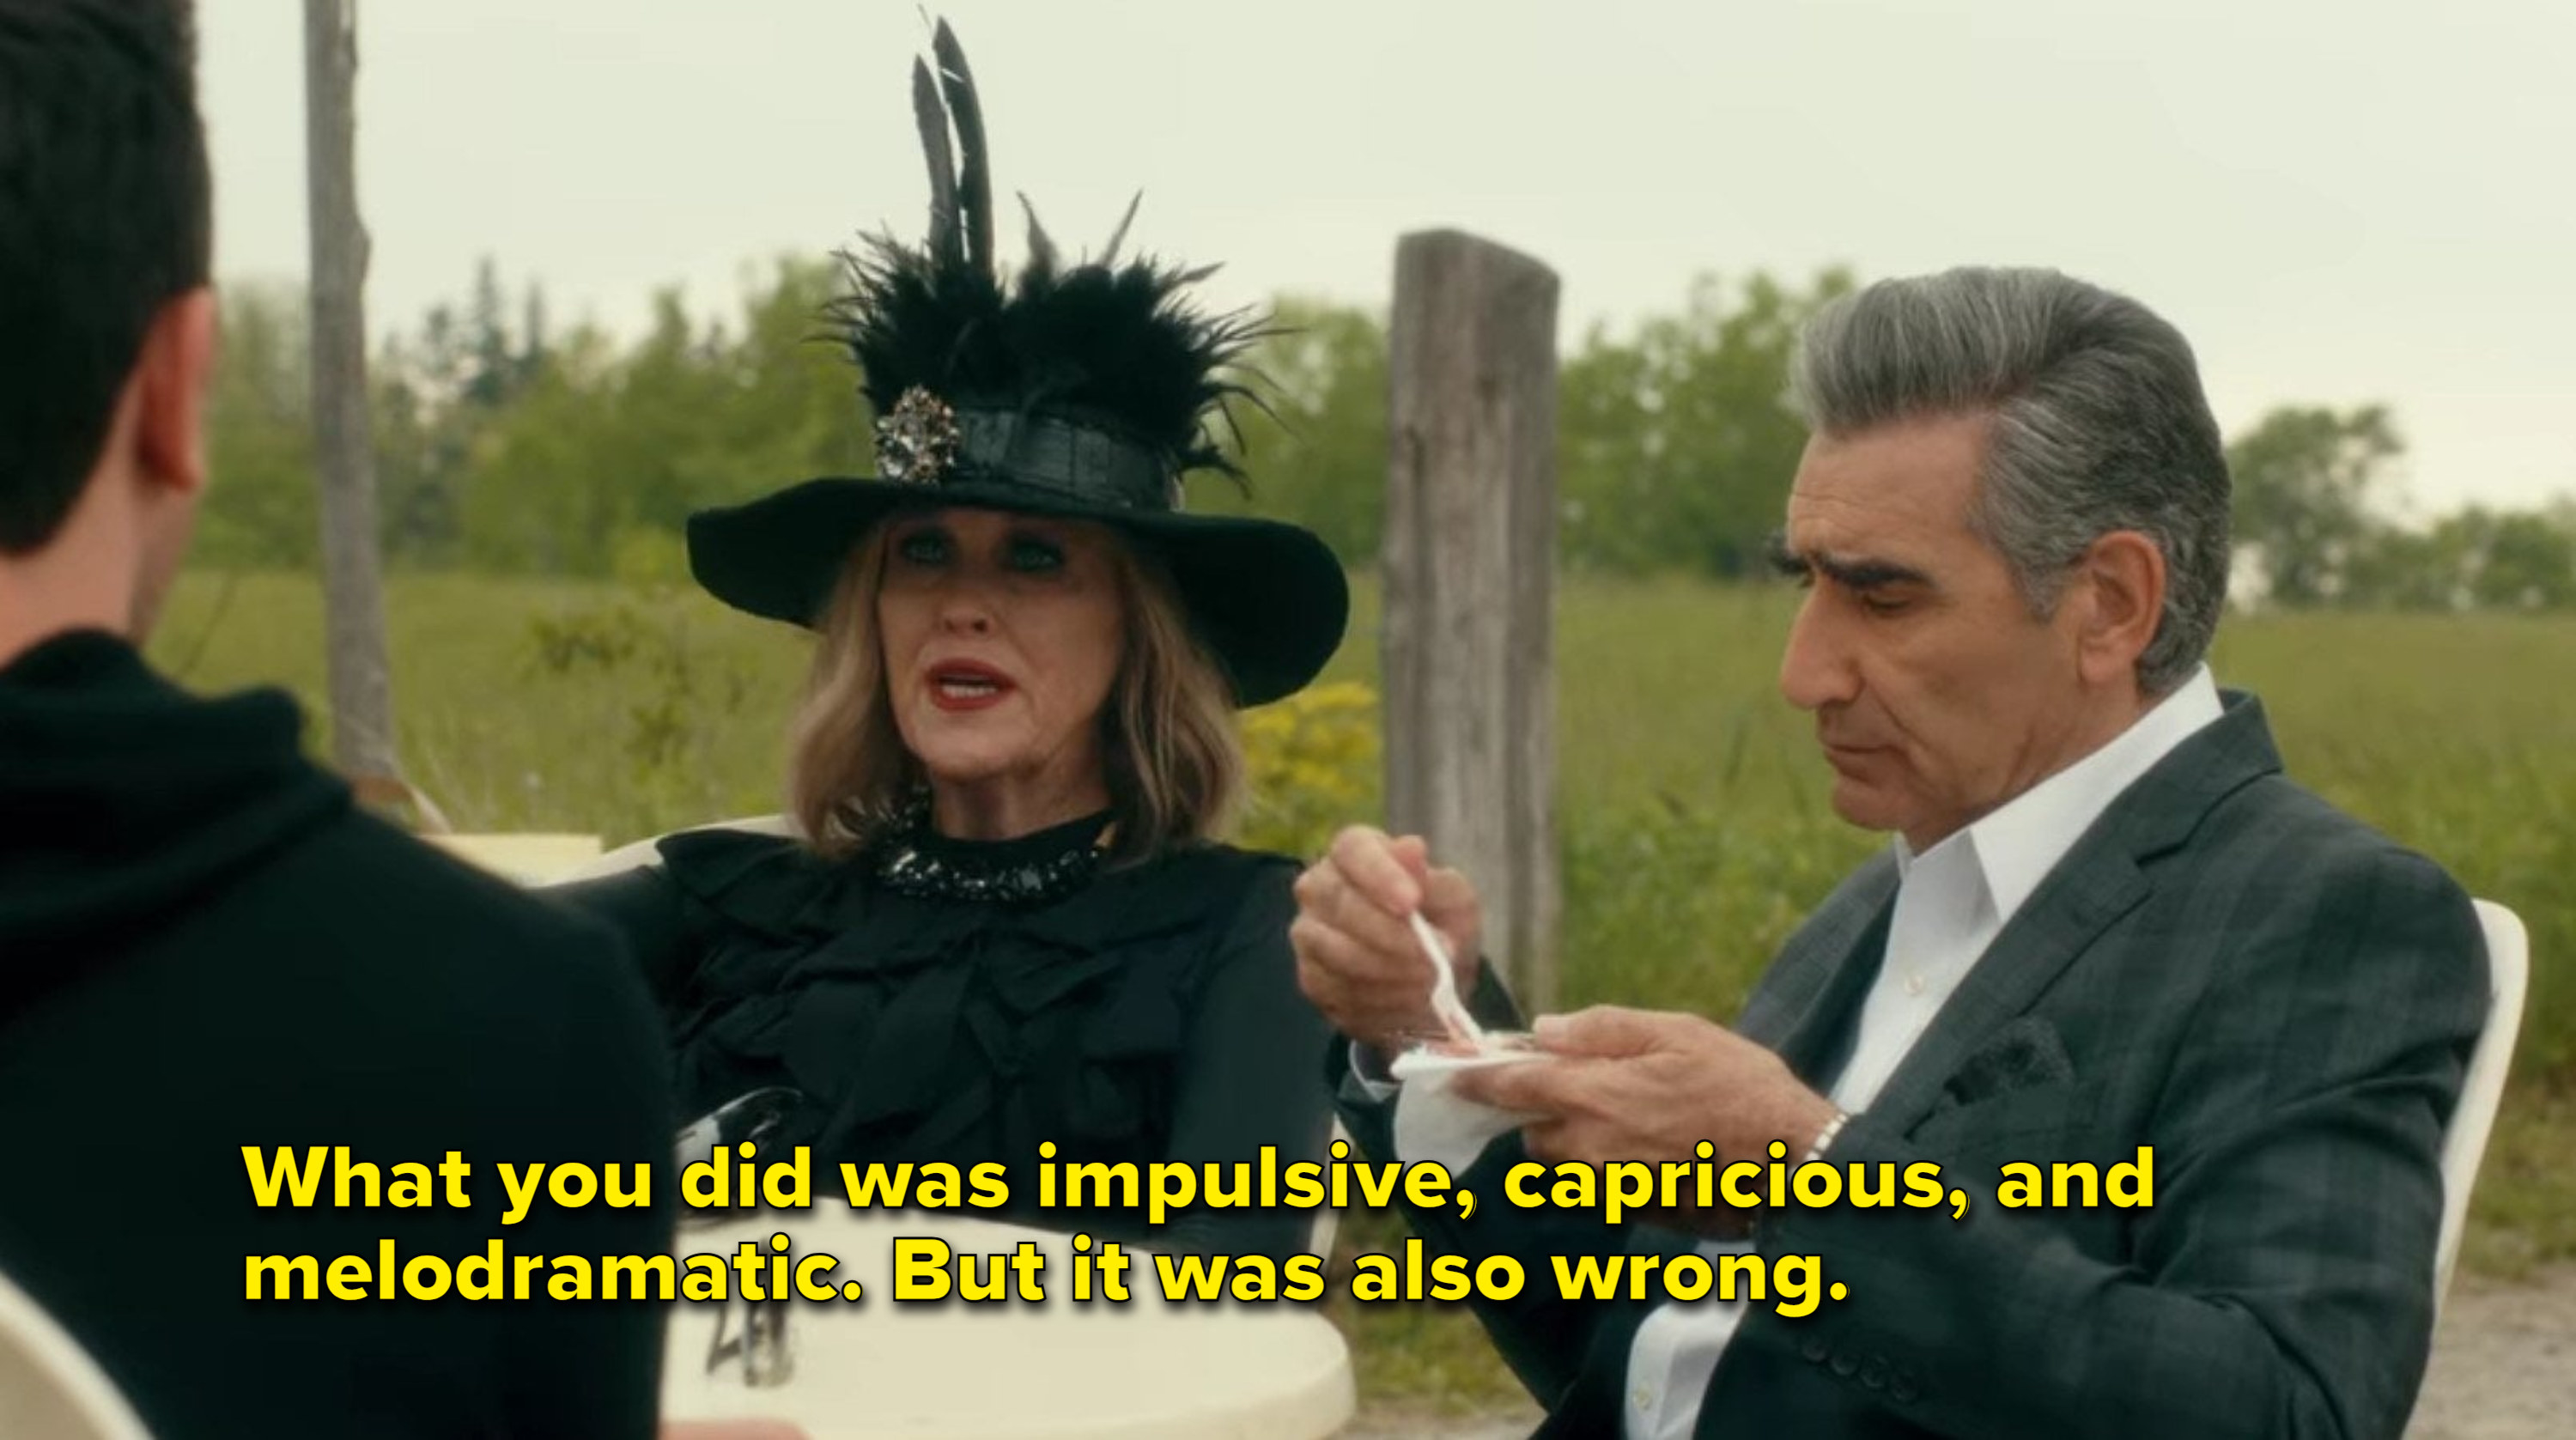 Moira says that what David did was impulsive, capricious, and melodramatic, and also wrong